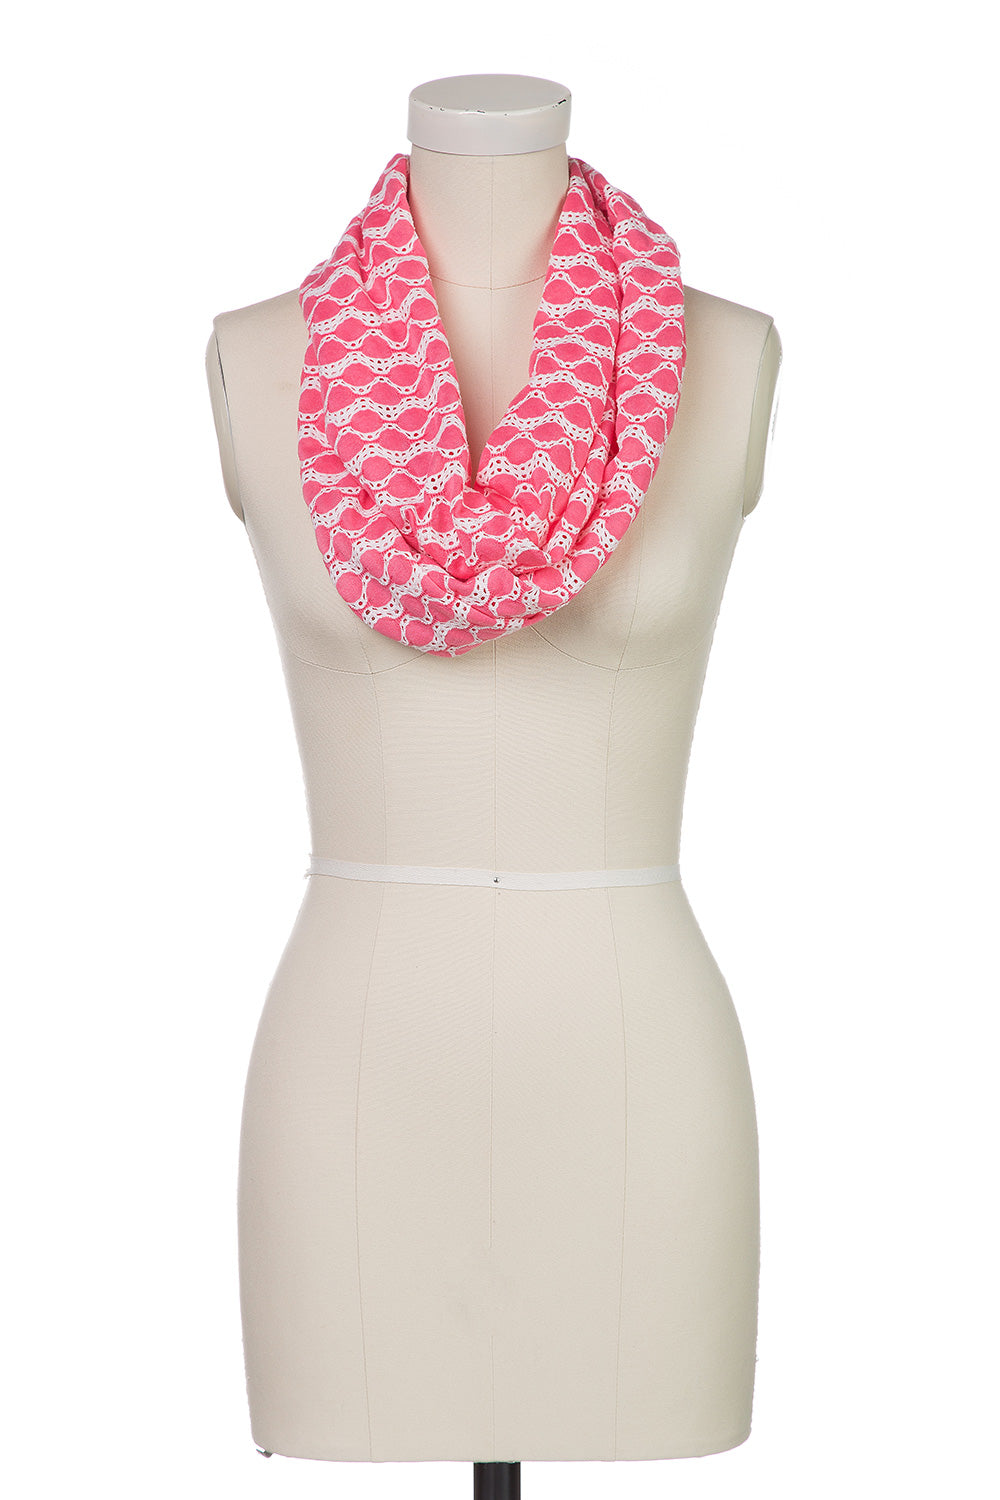 Type 1 Once upon a Dream Scarf in Coral